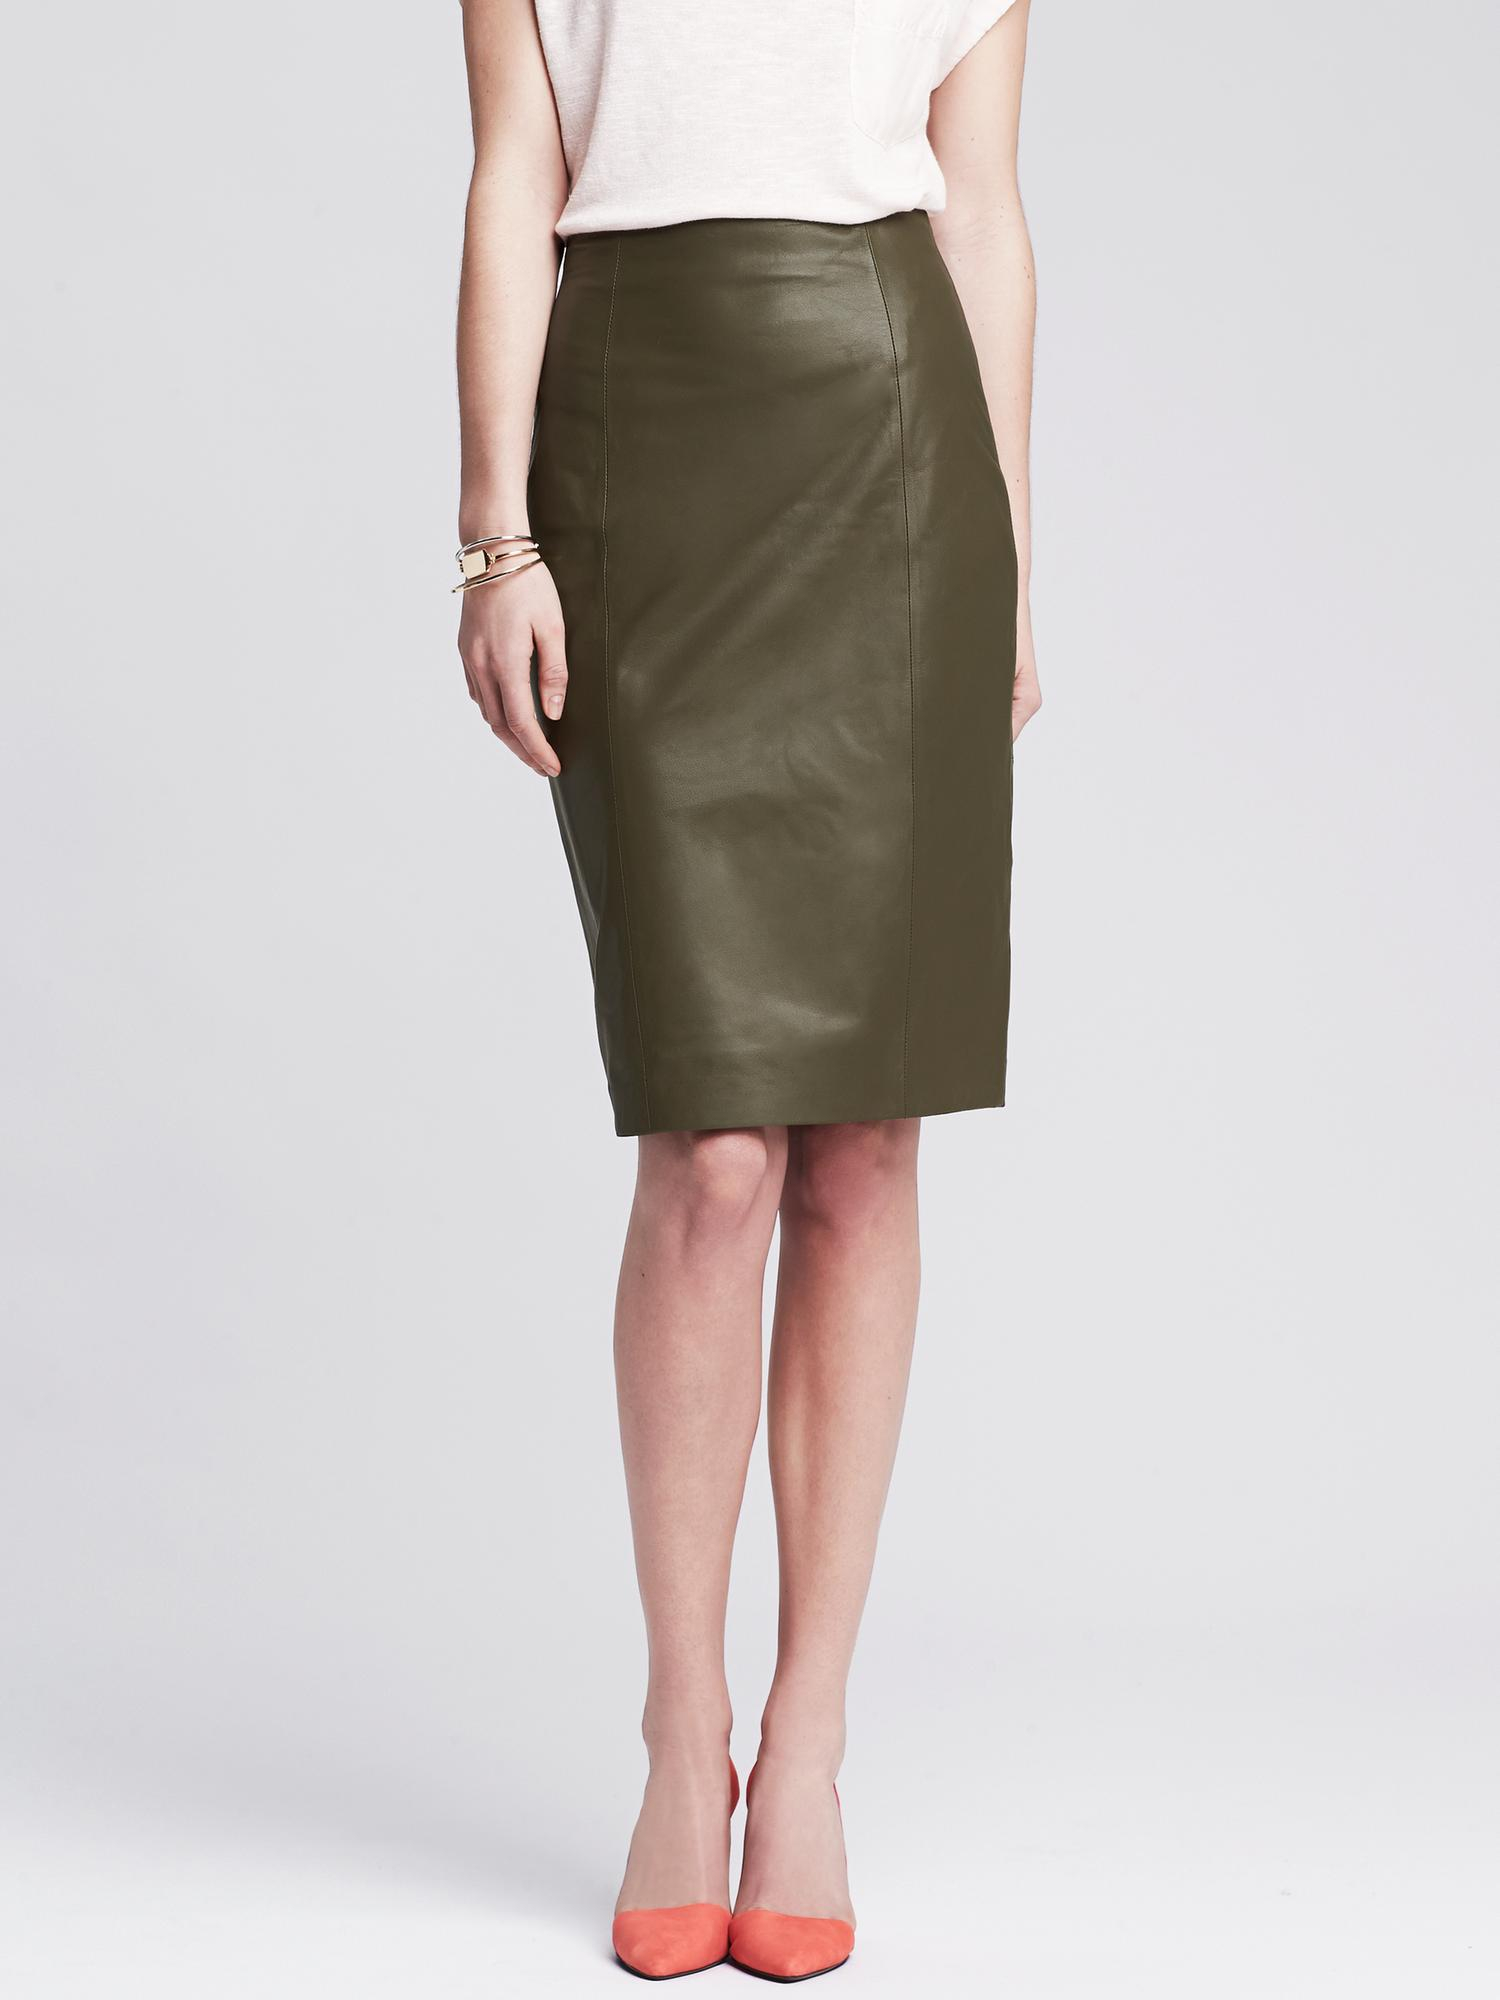 banana republic heritage olive leather pencil skirt in